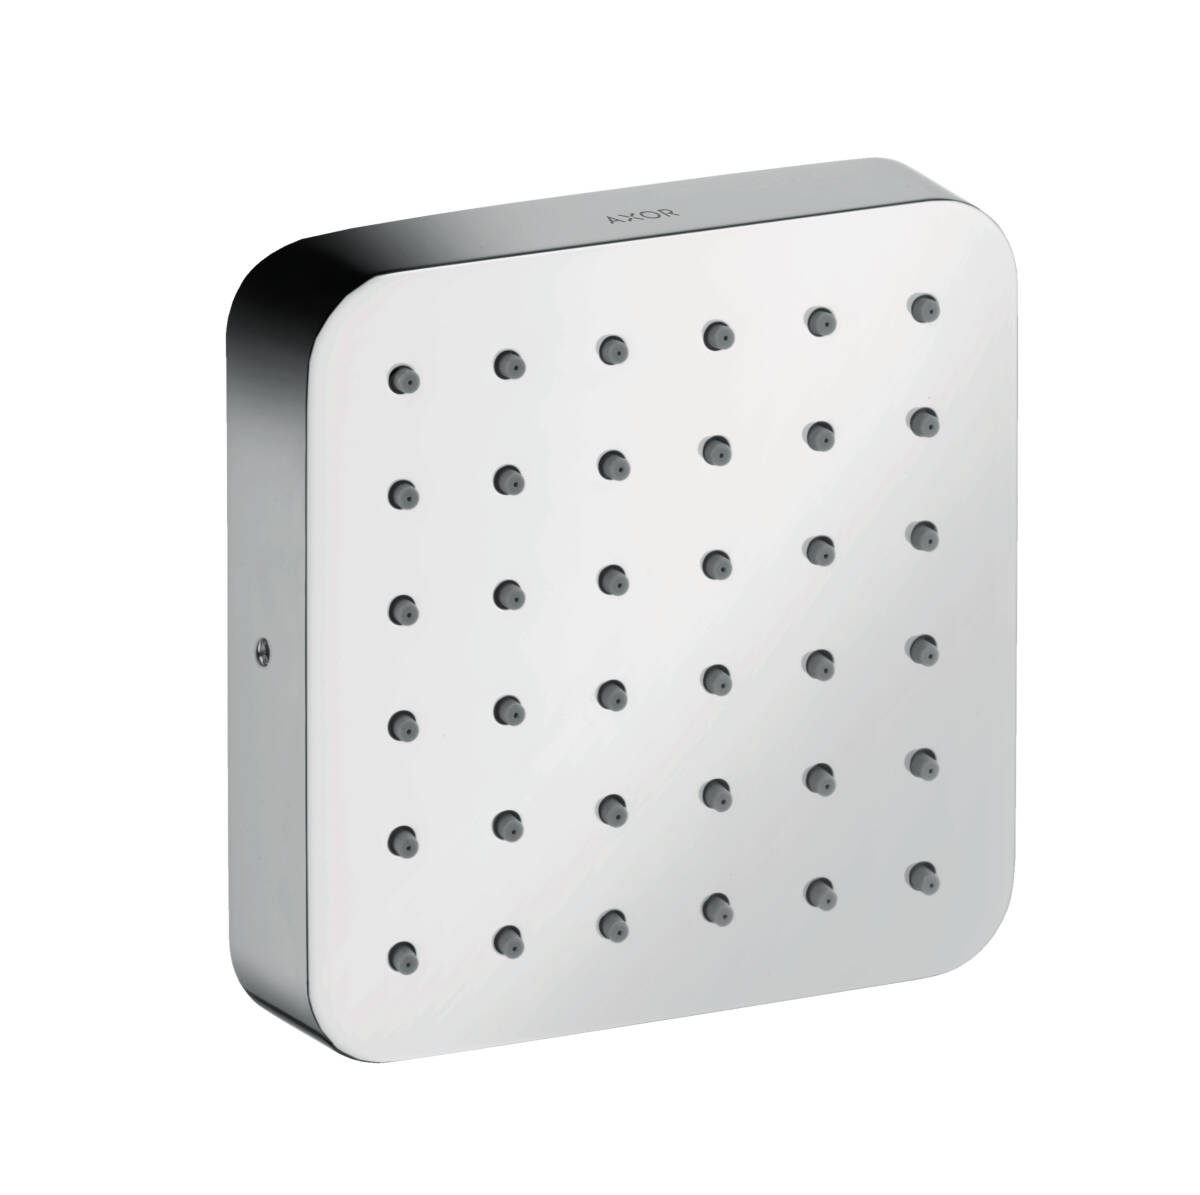 Shower module 120/120 for concealed installation softcube, Brushed Nickel, 36822820